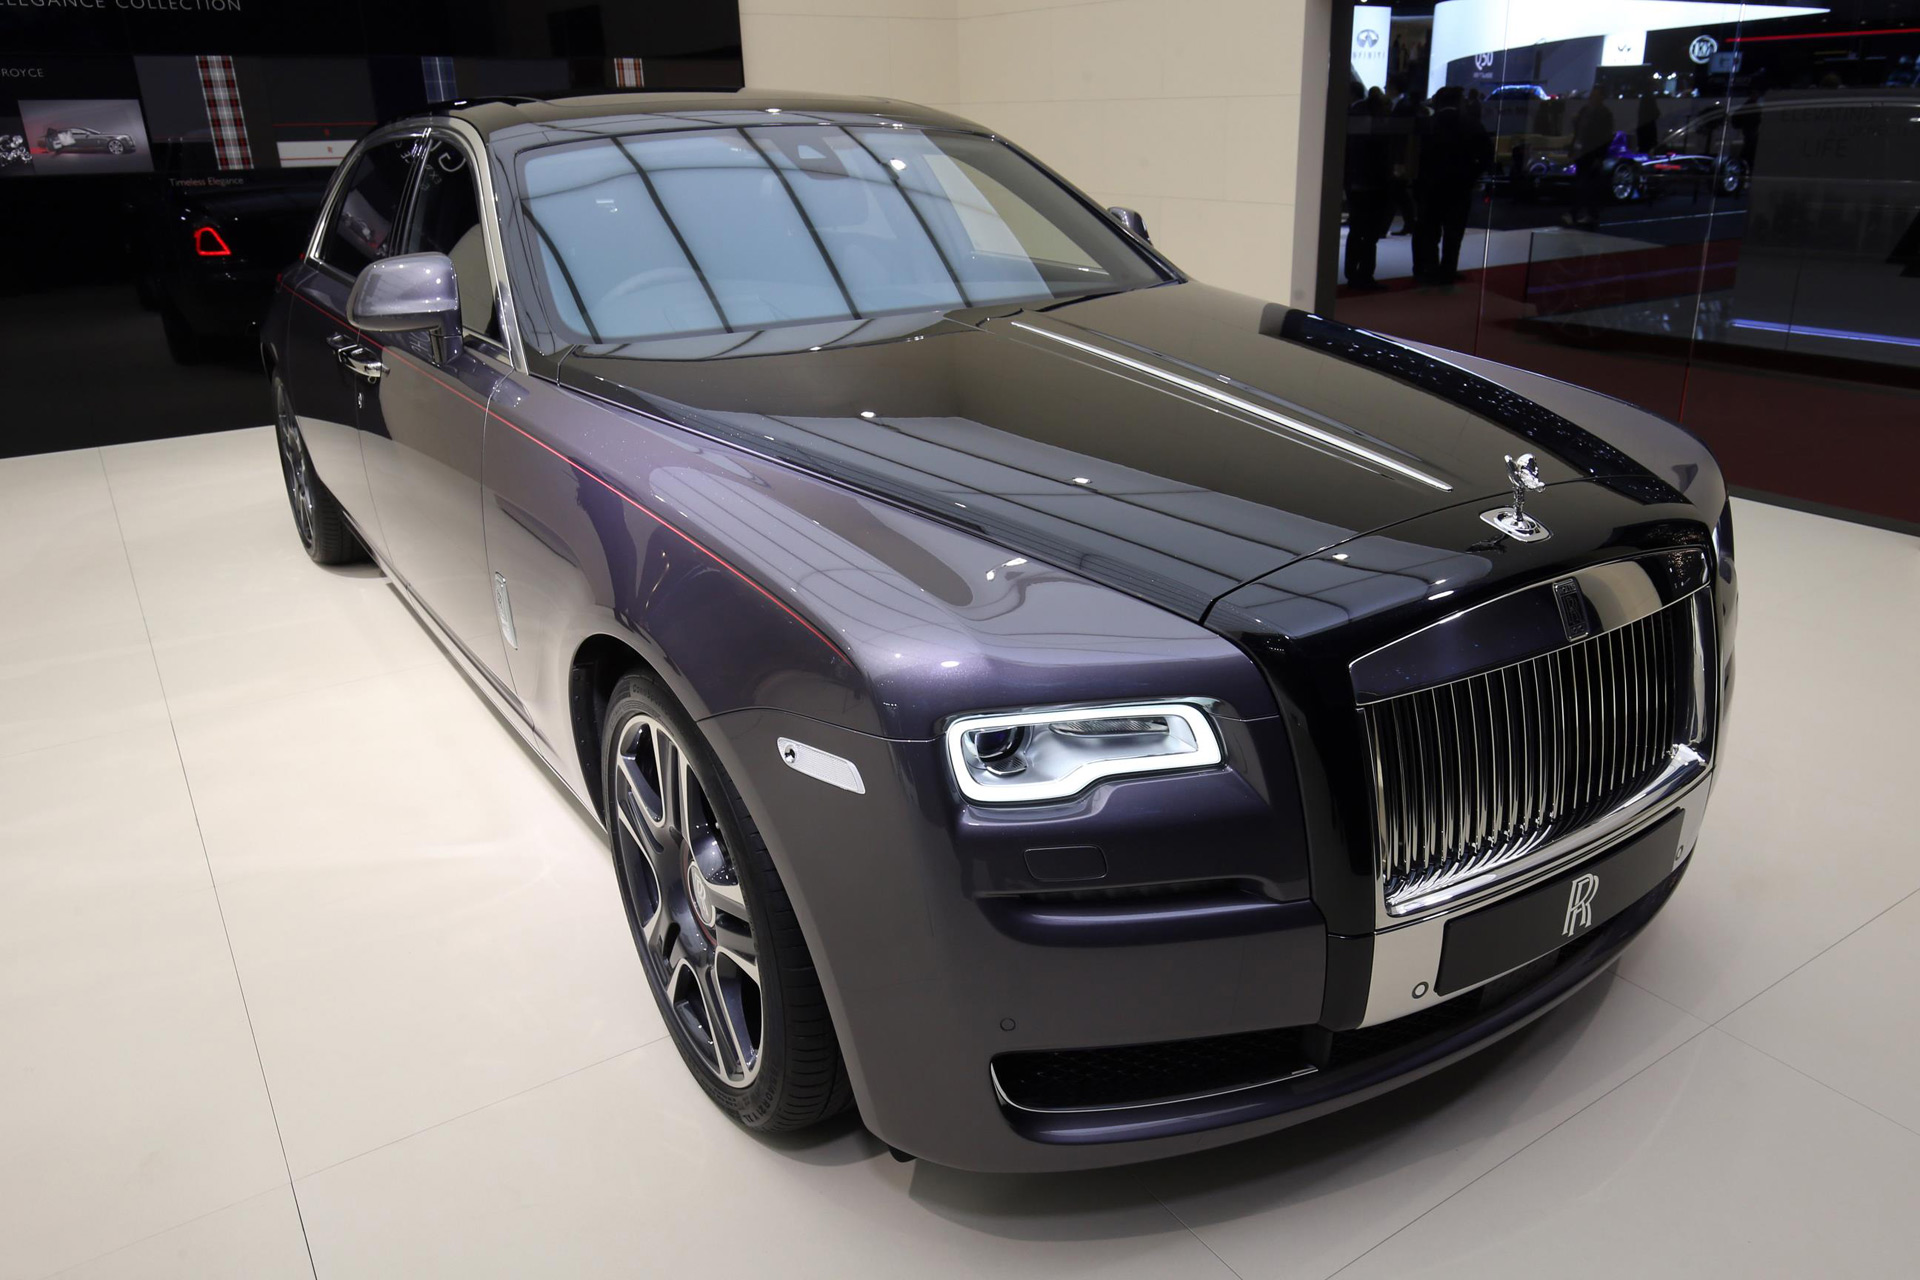 Rolls-Royce Destroyed 1,000 Diamonds To Paint This Ghost